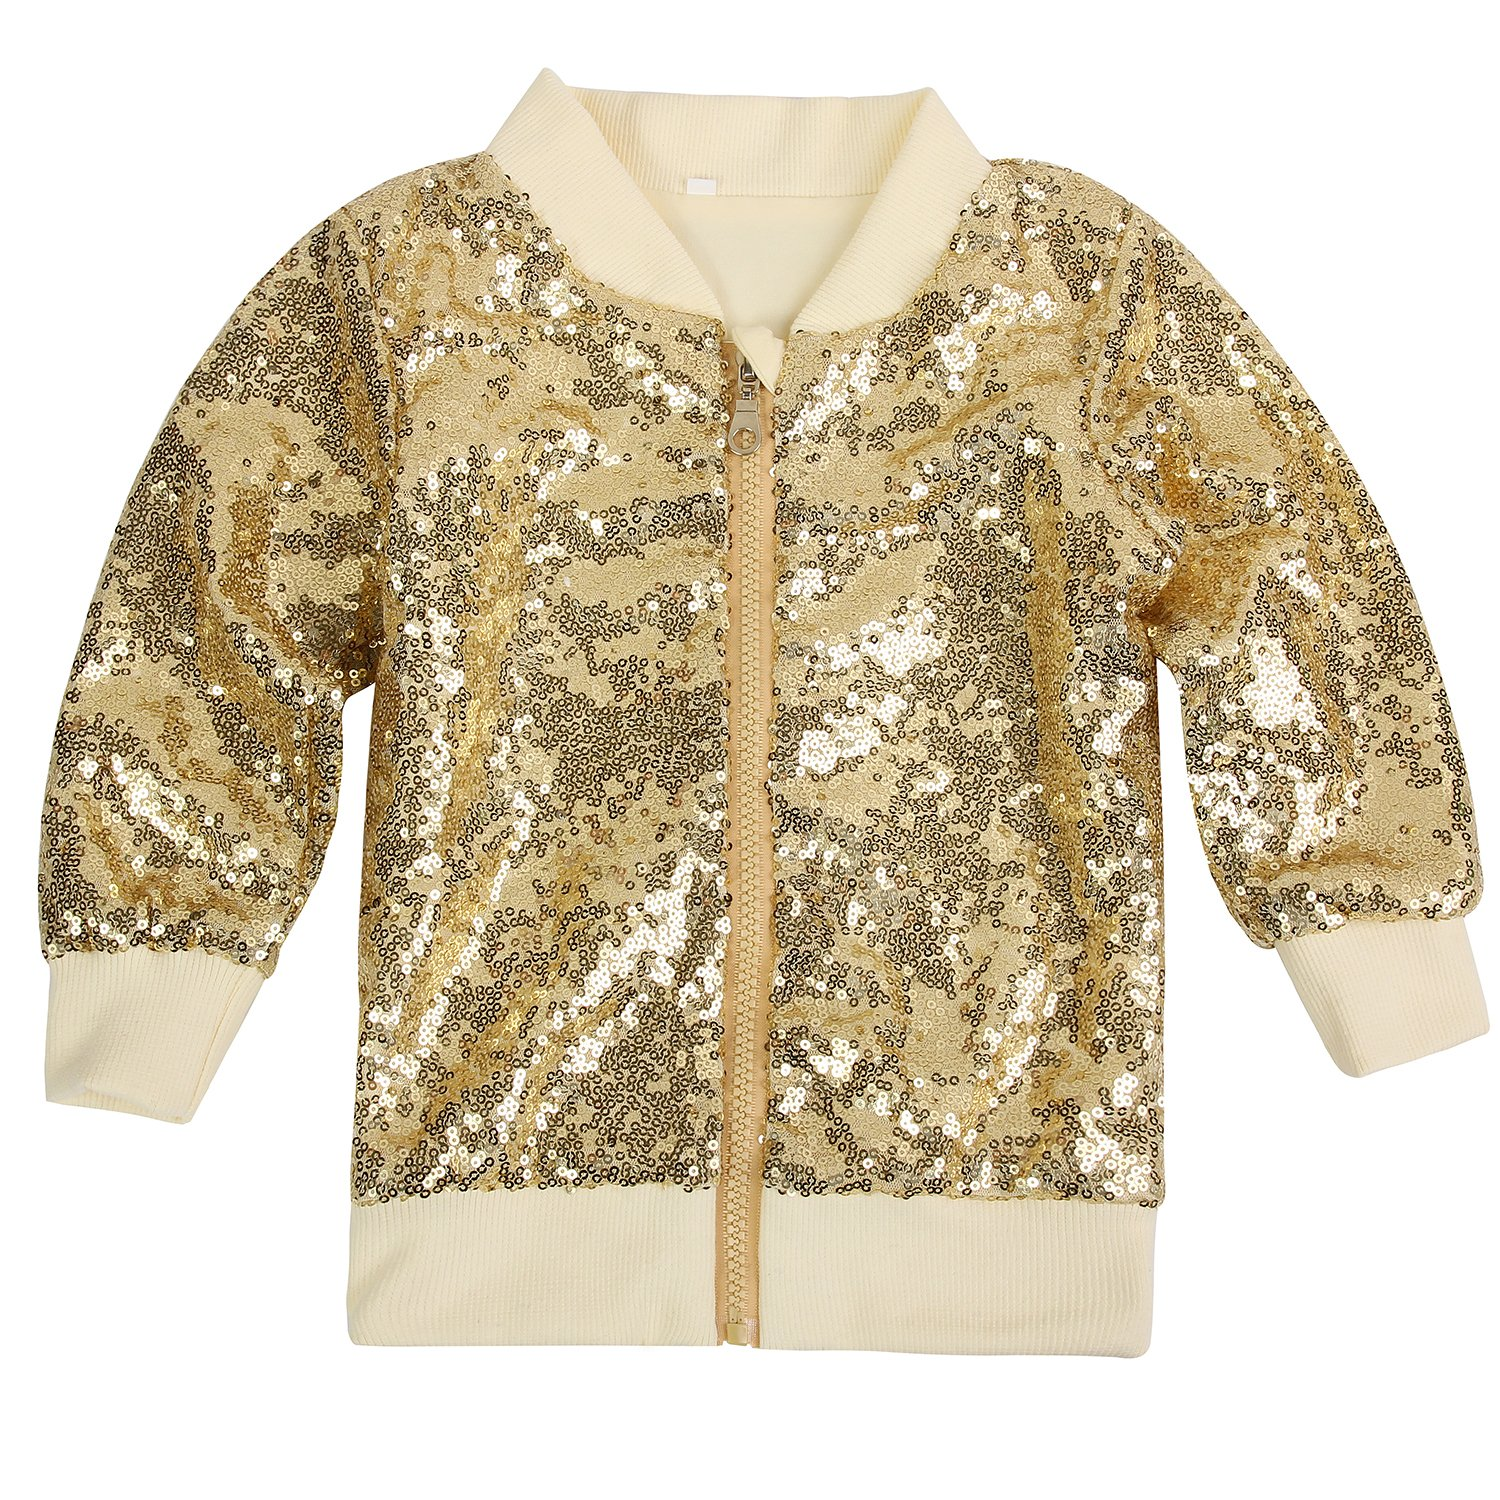 5dce9b1bb Cilucu Kids Jackets Girls Boys Gold Sequin Zipper Coat Jacket for Toddler  Long Sleeve Clothes: Amazon.in: Clothing & Accessories